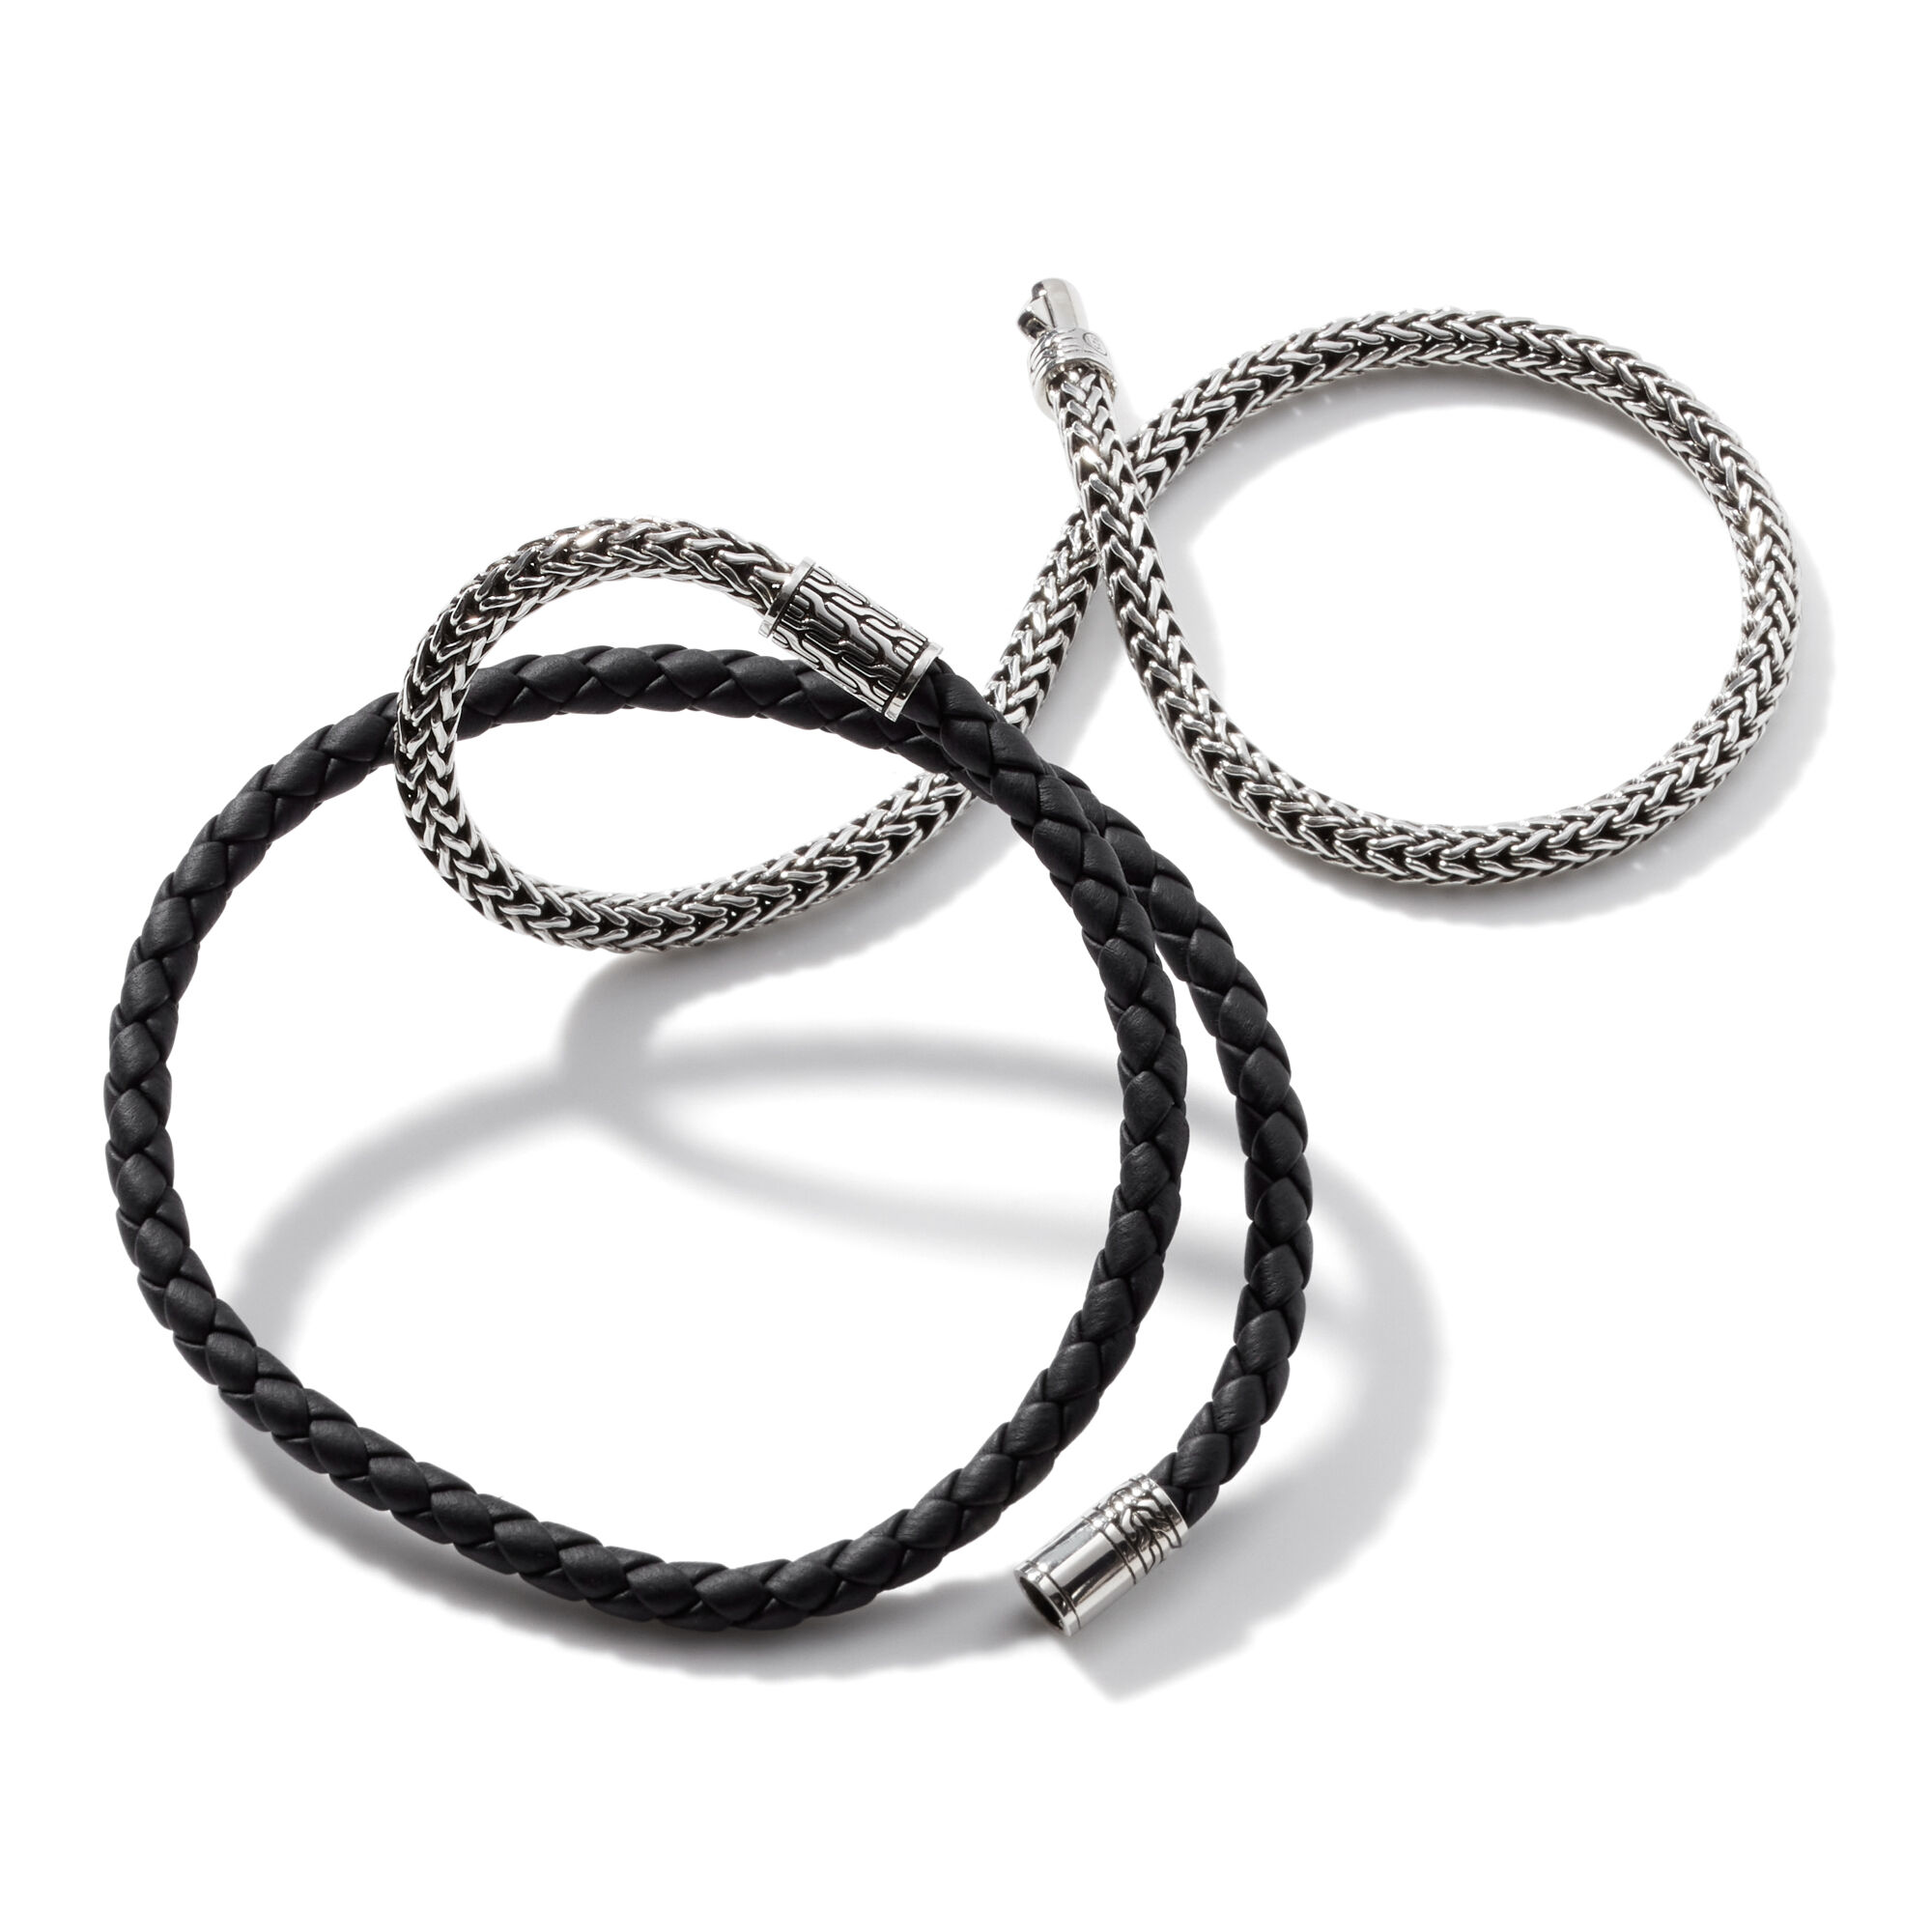 Classic Chain Triple Wrap Bracelet in Silver with Leather, , large